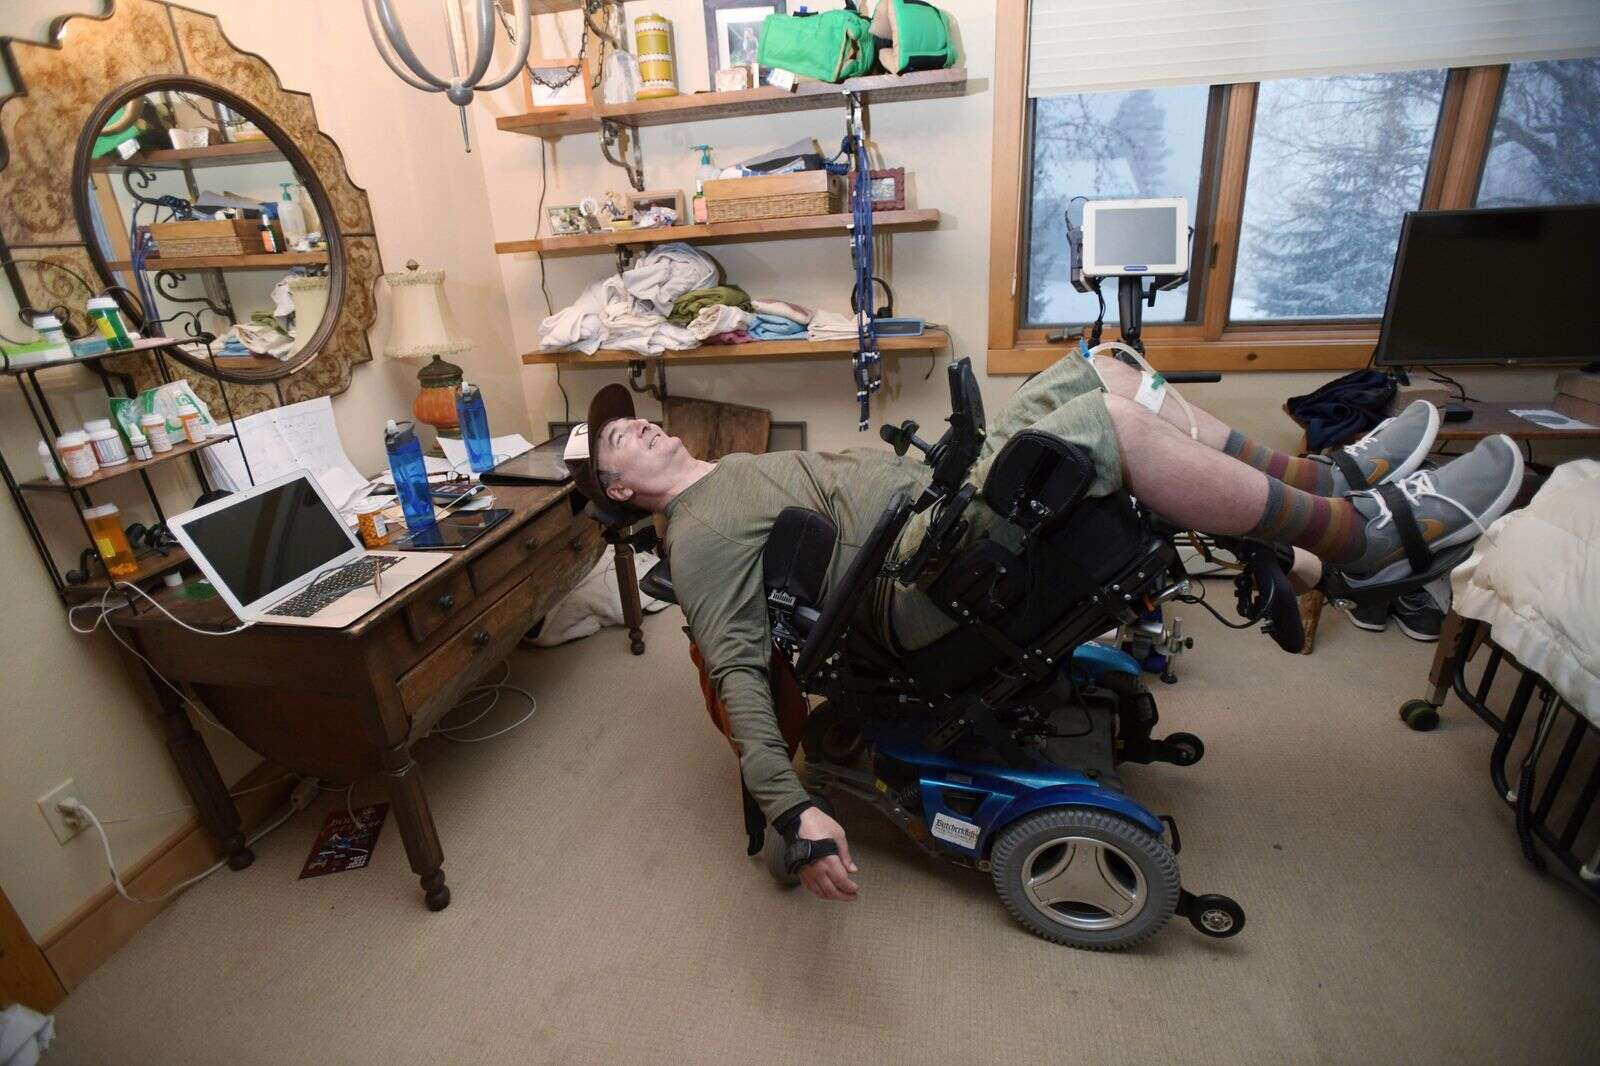 Chris Arnis stretches December 12, 2020, at his Steamboat Springs home. Arnis received a C-4 spinal cord injury after crashing March 15, 2015, at Steamboat Resort. (Matt Stensland, Special to The Colorado Sun)